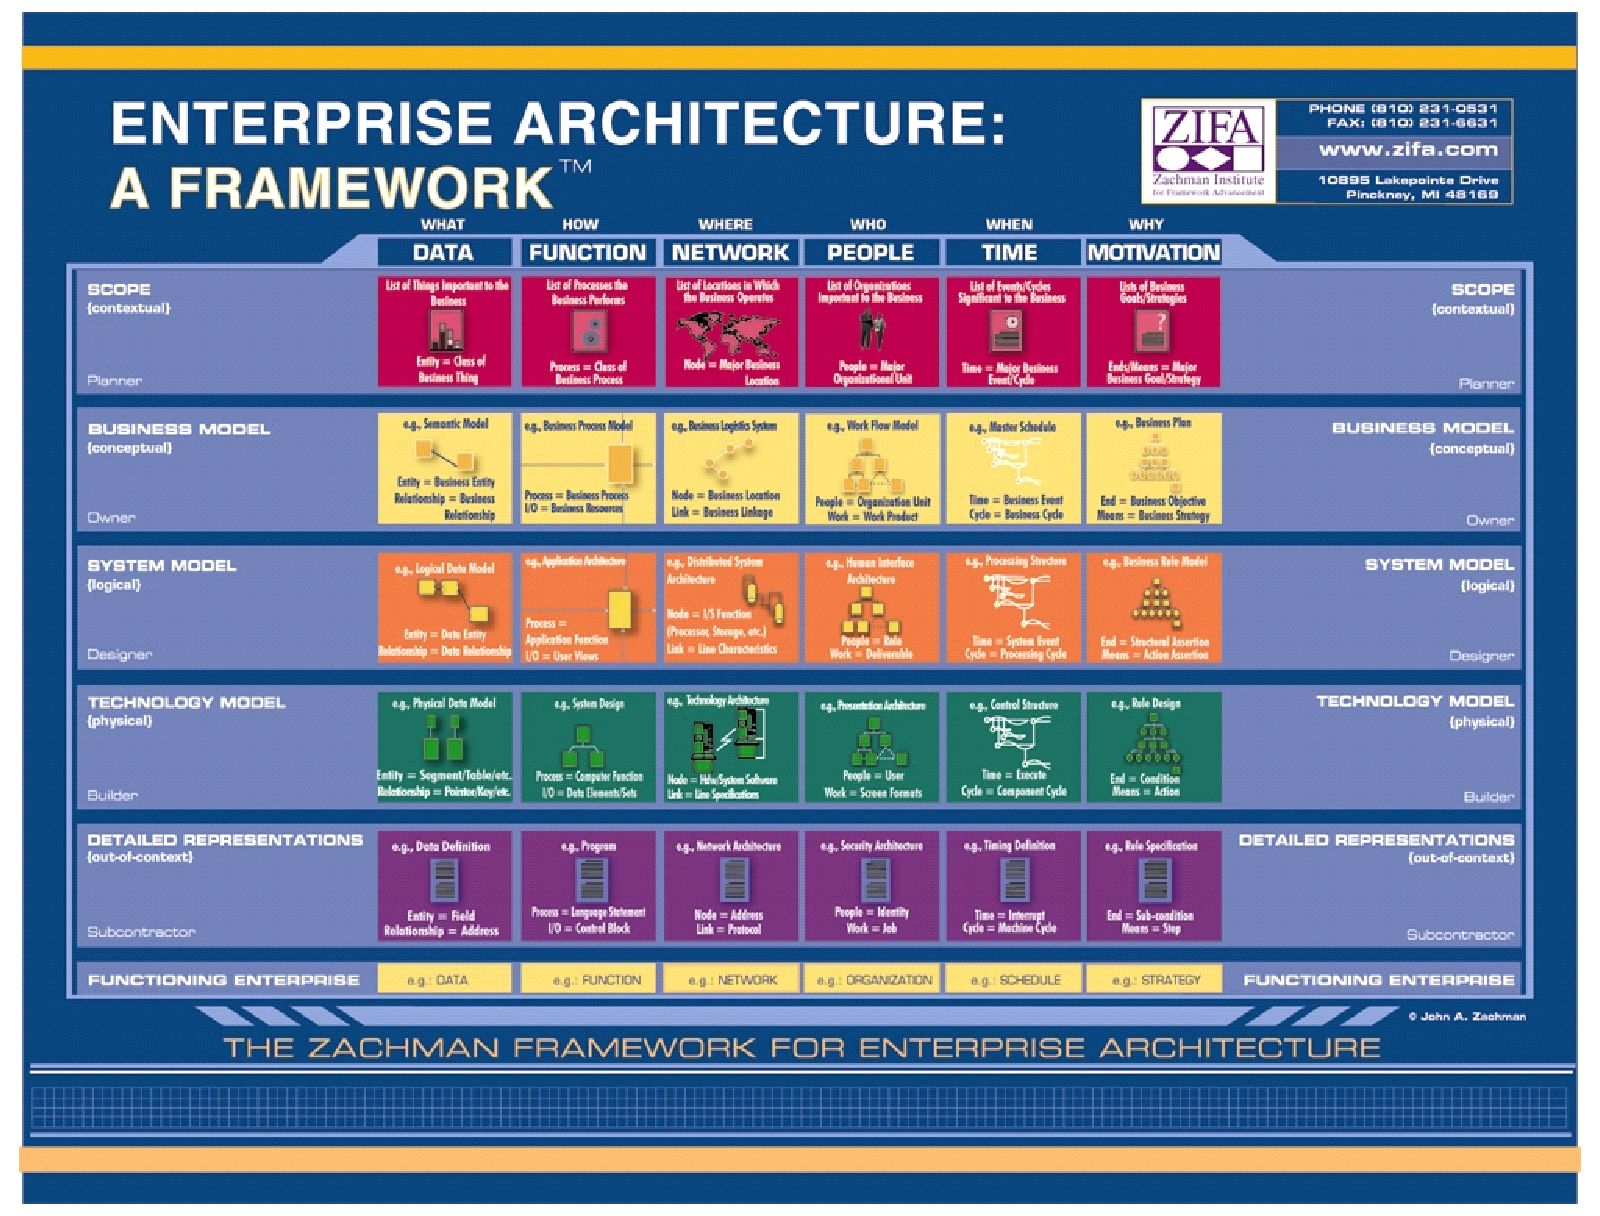 Use of uml 20 diagrams for systems architecture modeling enterprise architecture pooptronica Choice Image